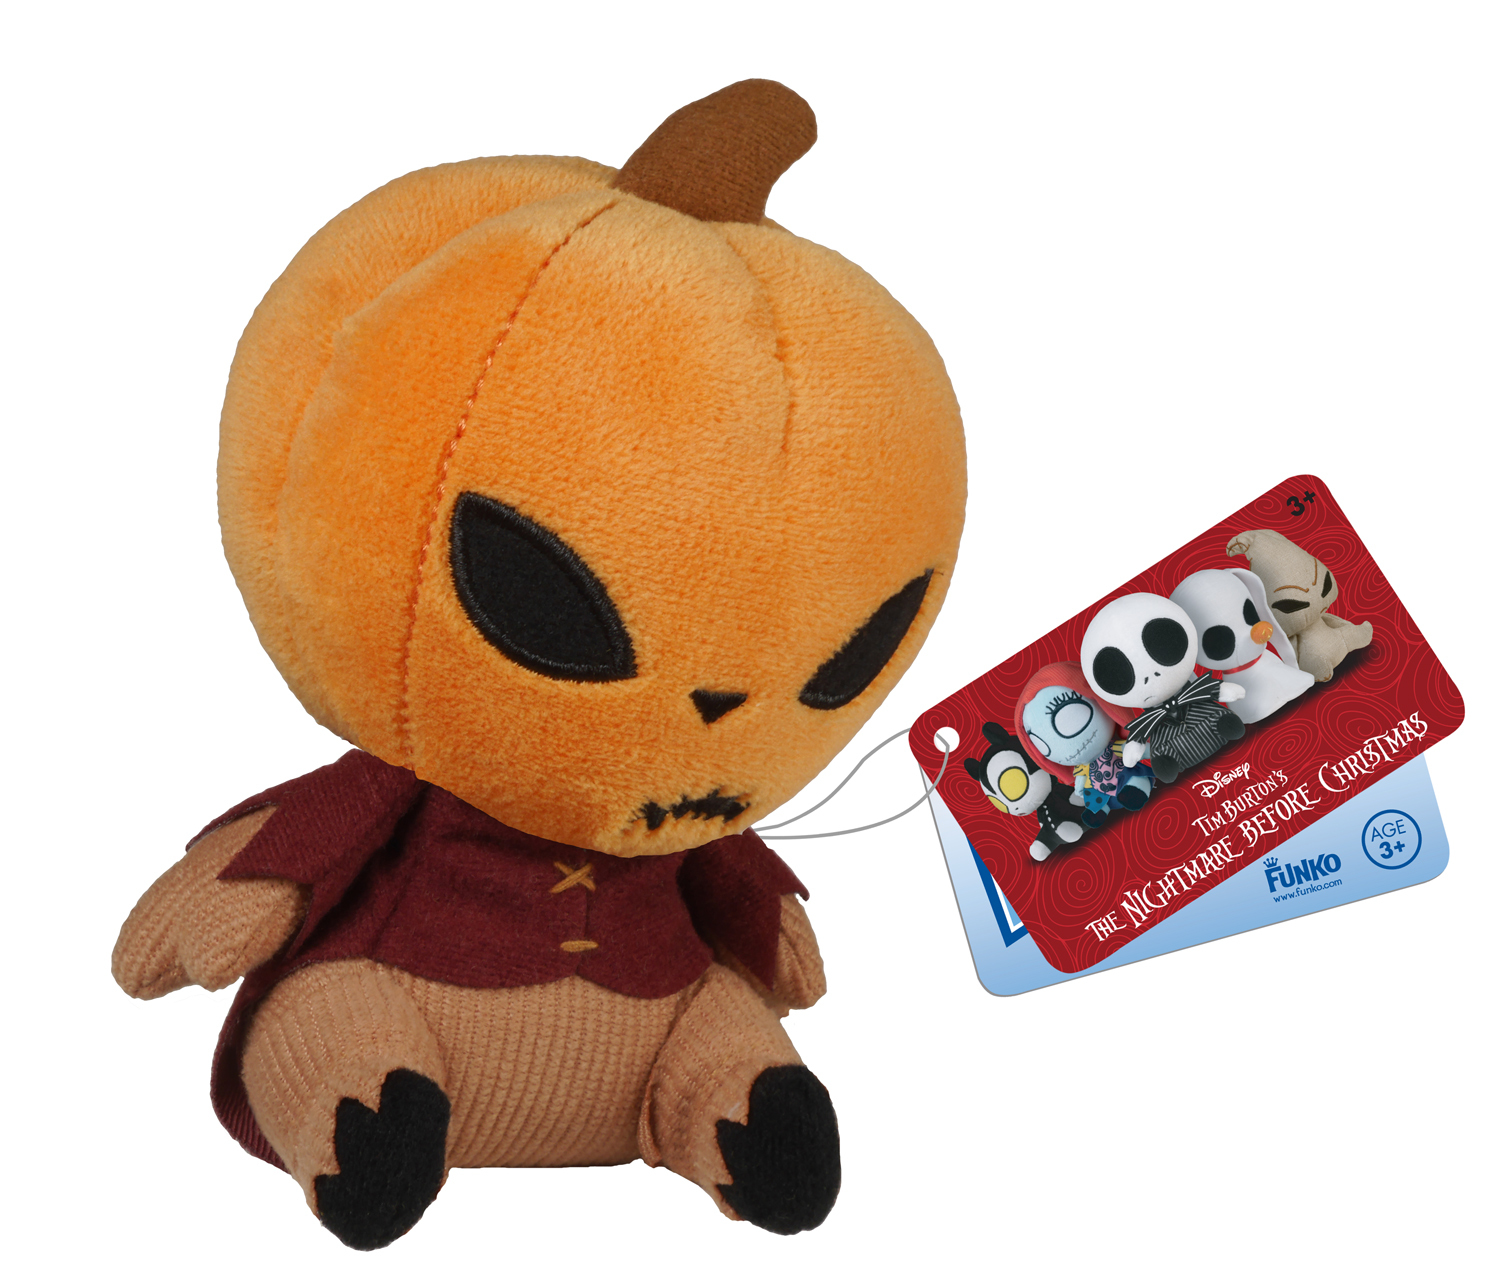 Nightmare Before Christmas Mopeez - Pumpkin King Plush | Toy | at ...